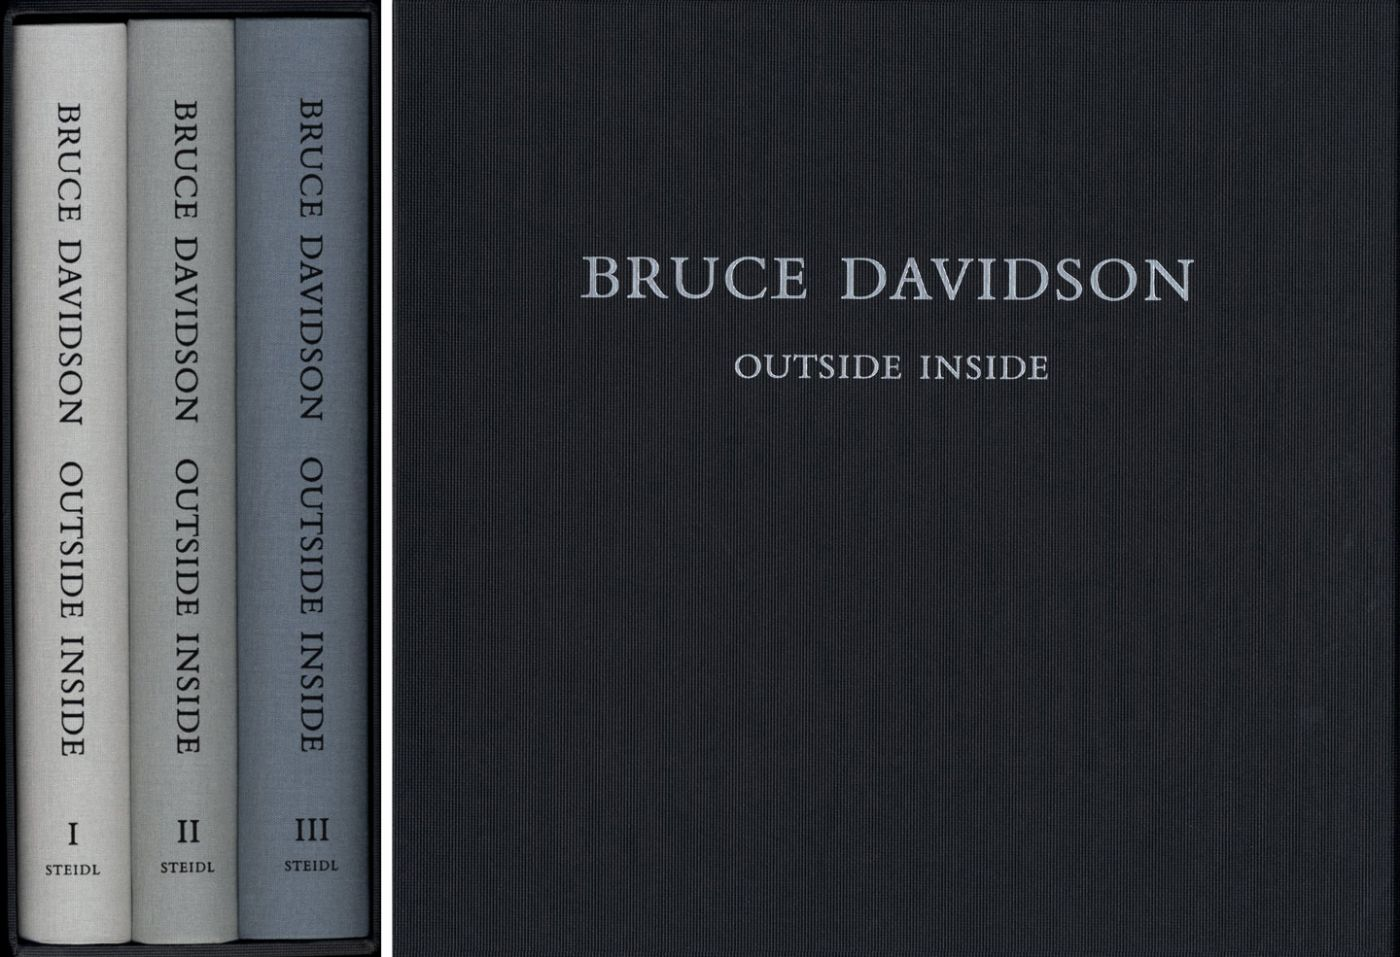 Bruce Davidson: Outside Inside (Three Volumes) [SIGNED]